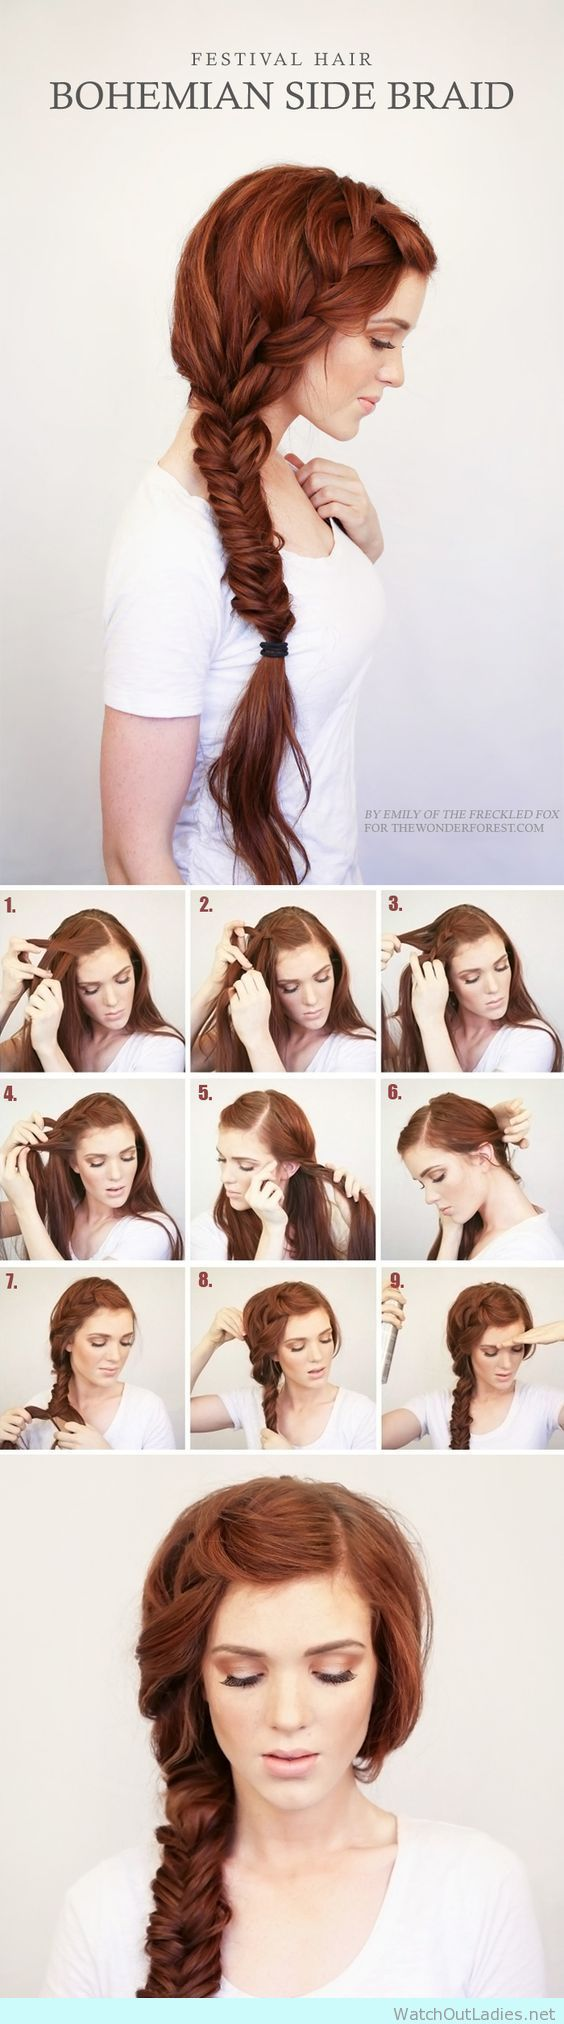 short hair styles for homecoming 17 best ideas about side braid hairstyles on 1686 | e1686c253a0f71c07512cbb6c9563d65